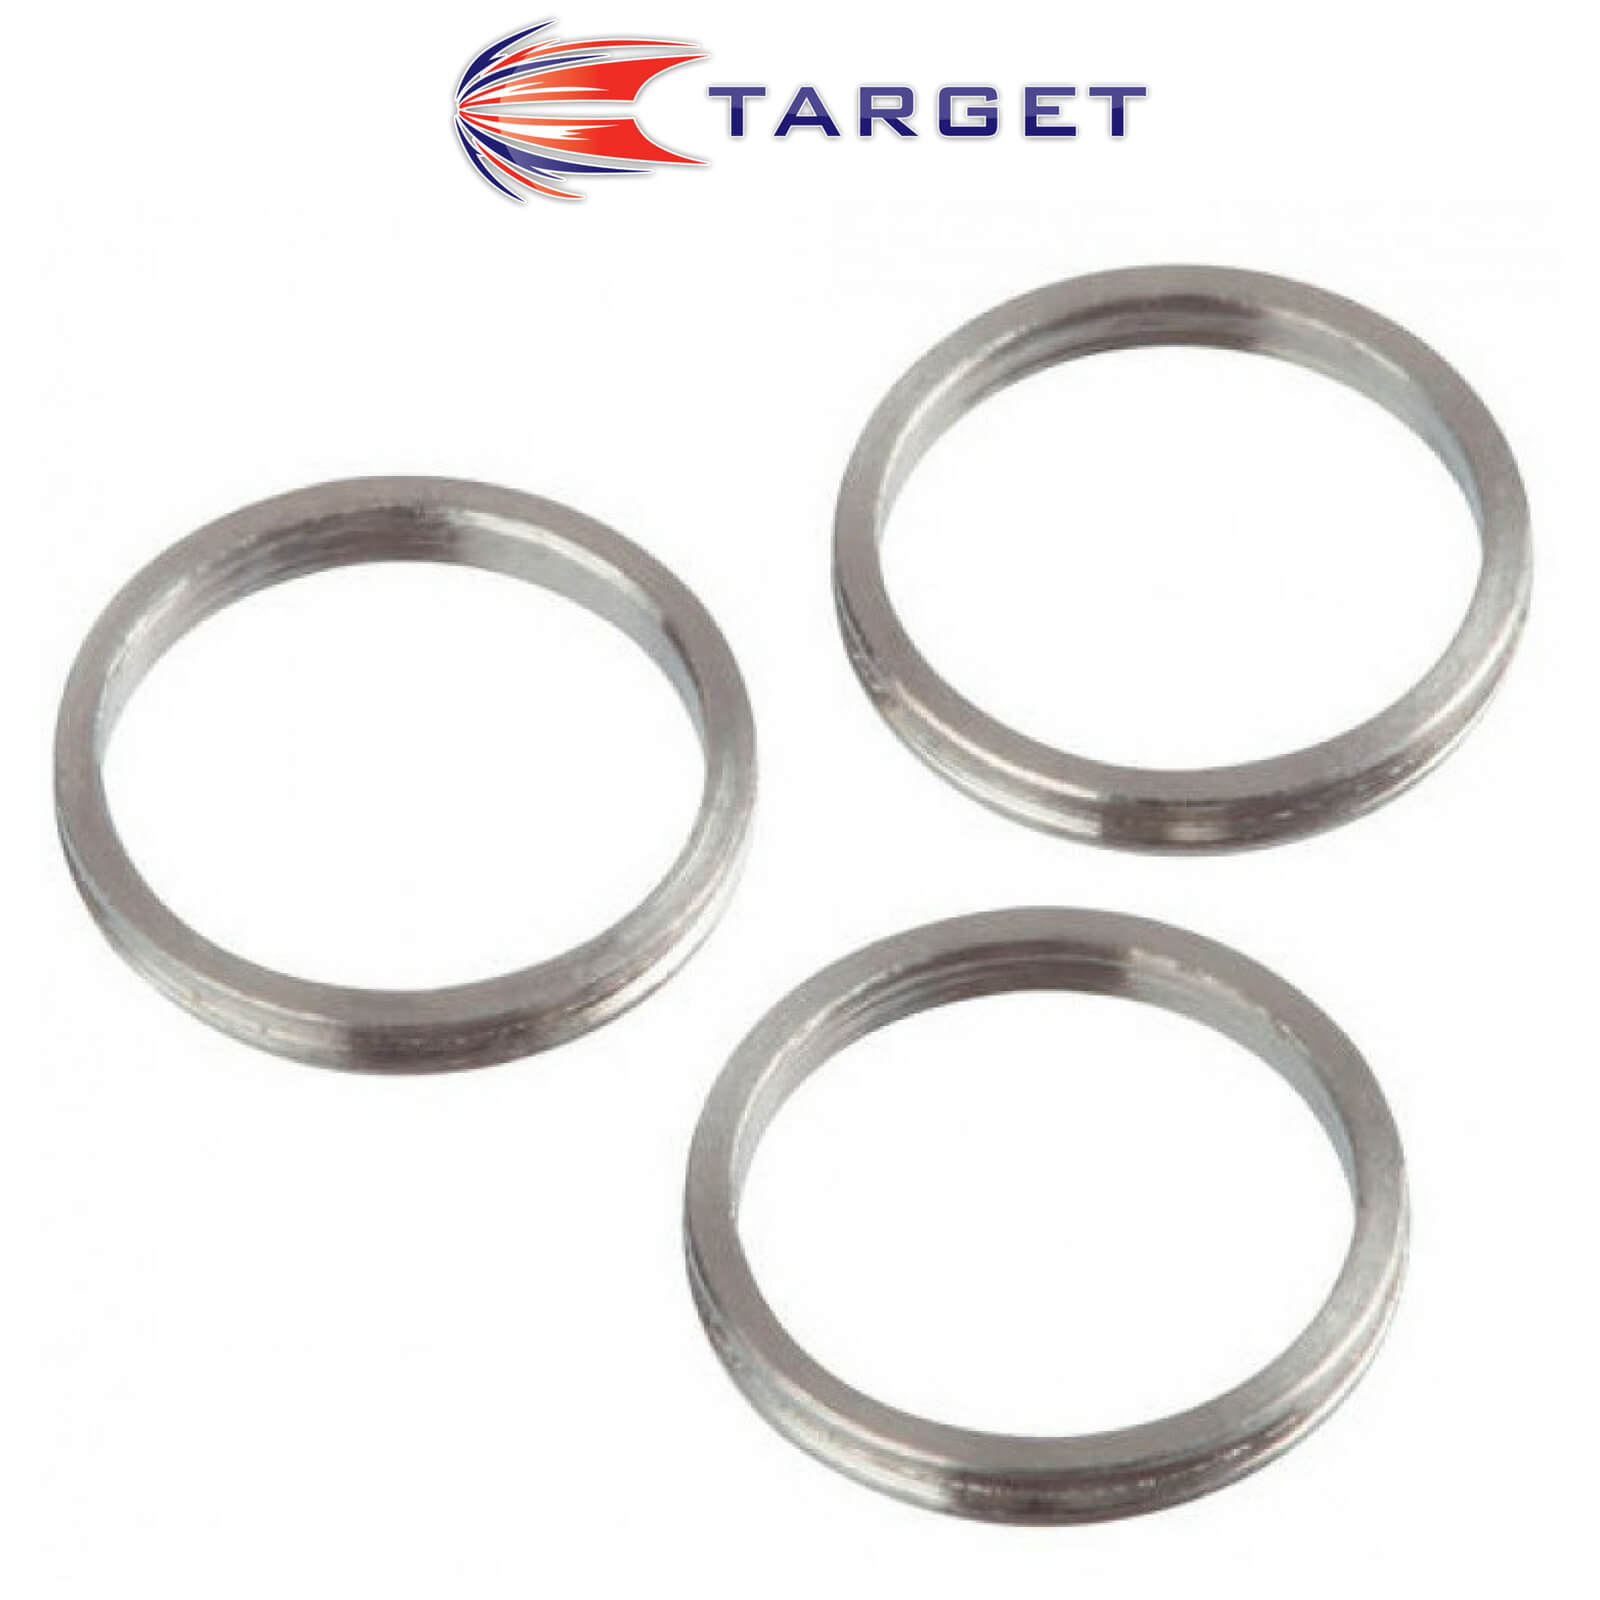 Shaft Accessories - Target - Titanium Pro Grip Dart Shaft Rings